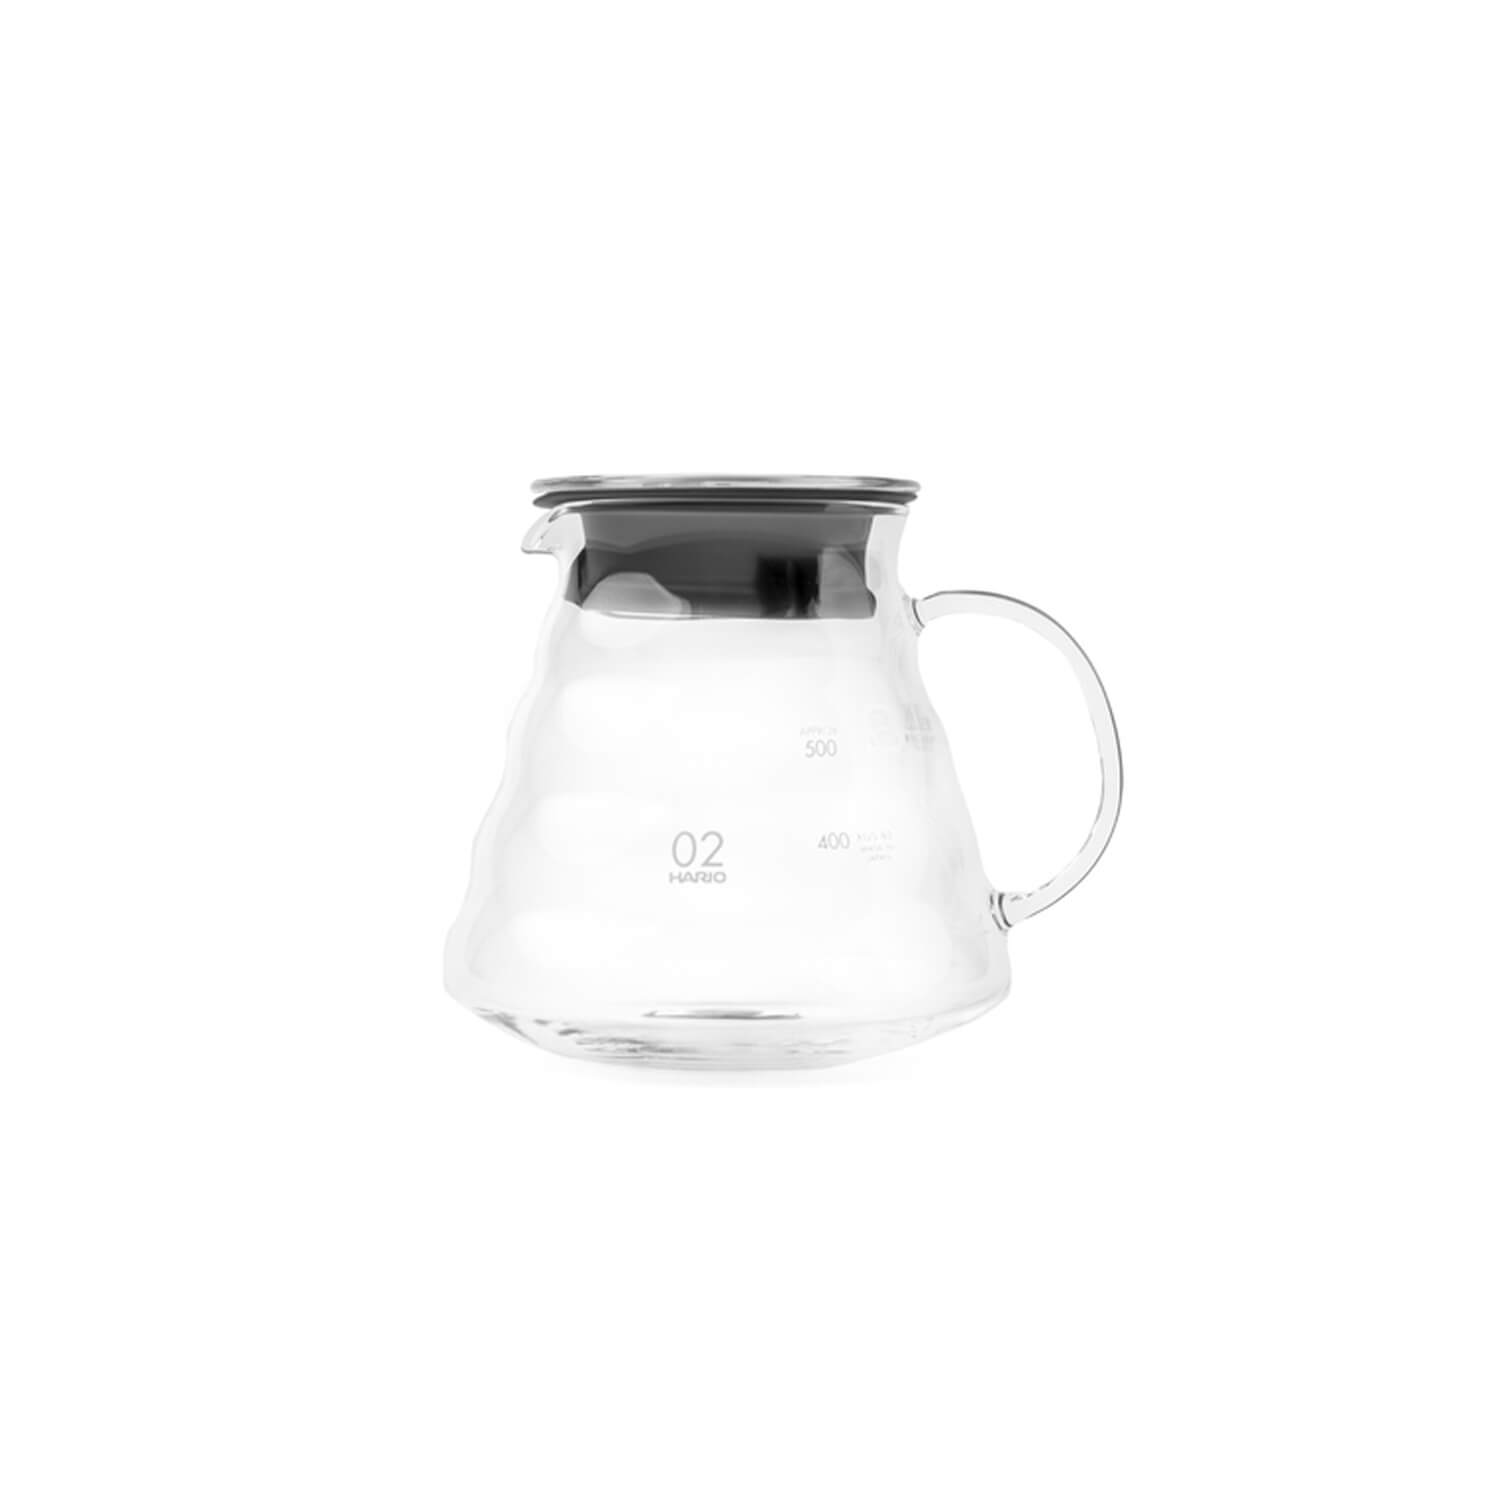 Hario - V60 Range Server - 02 - Clear - 600 ml